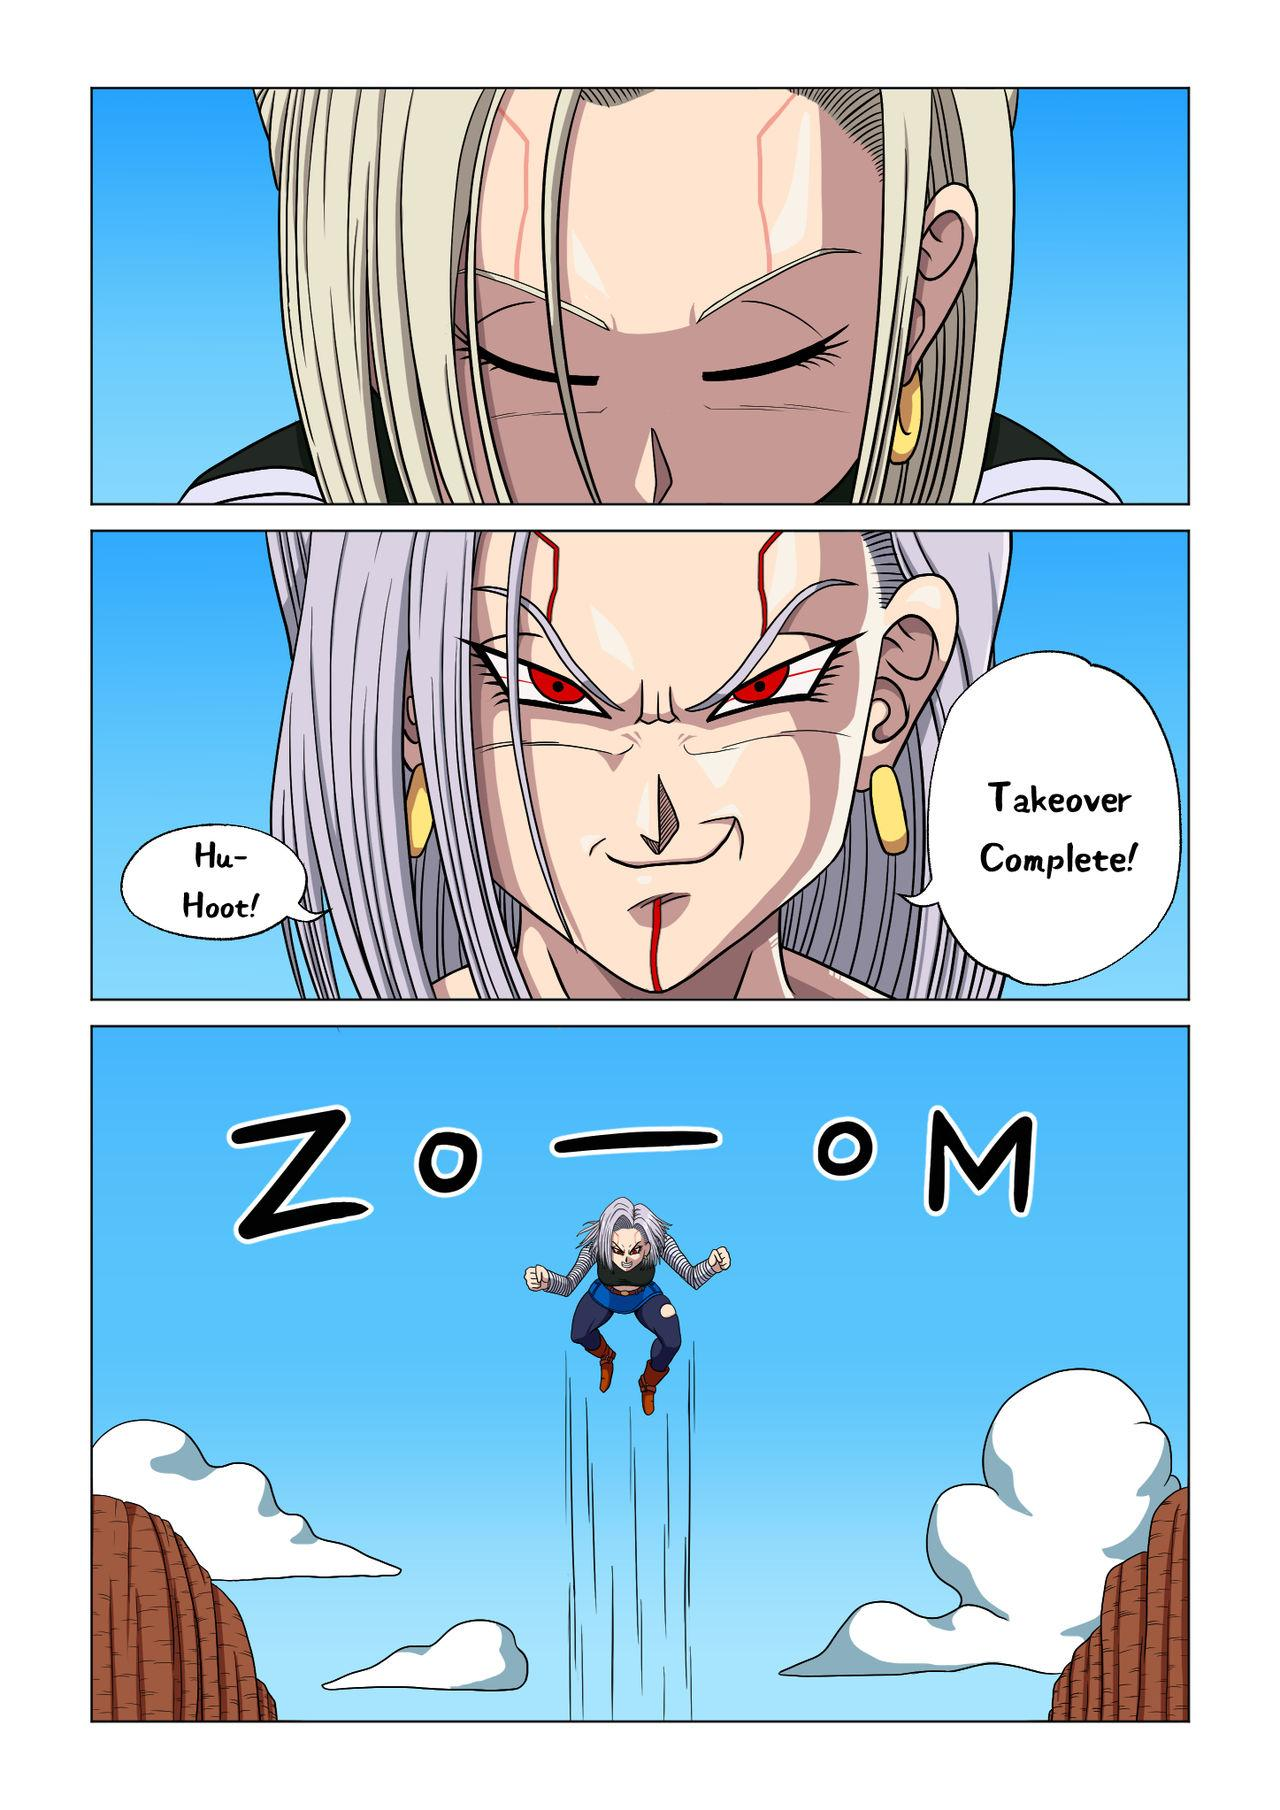 Android 18 vs Baby 13